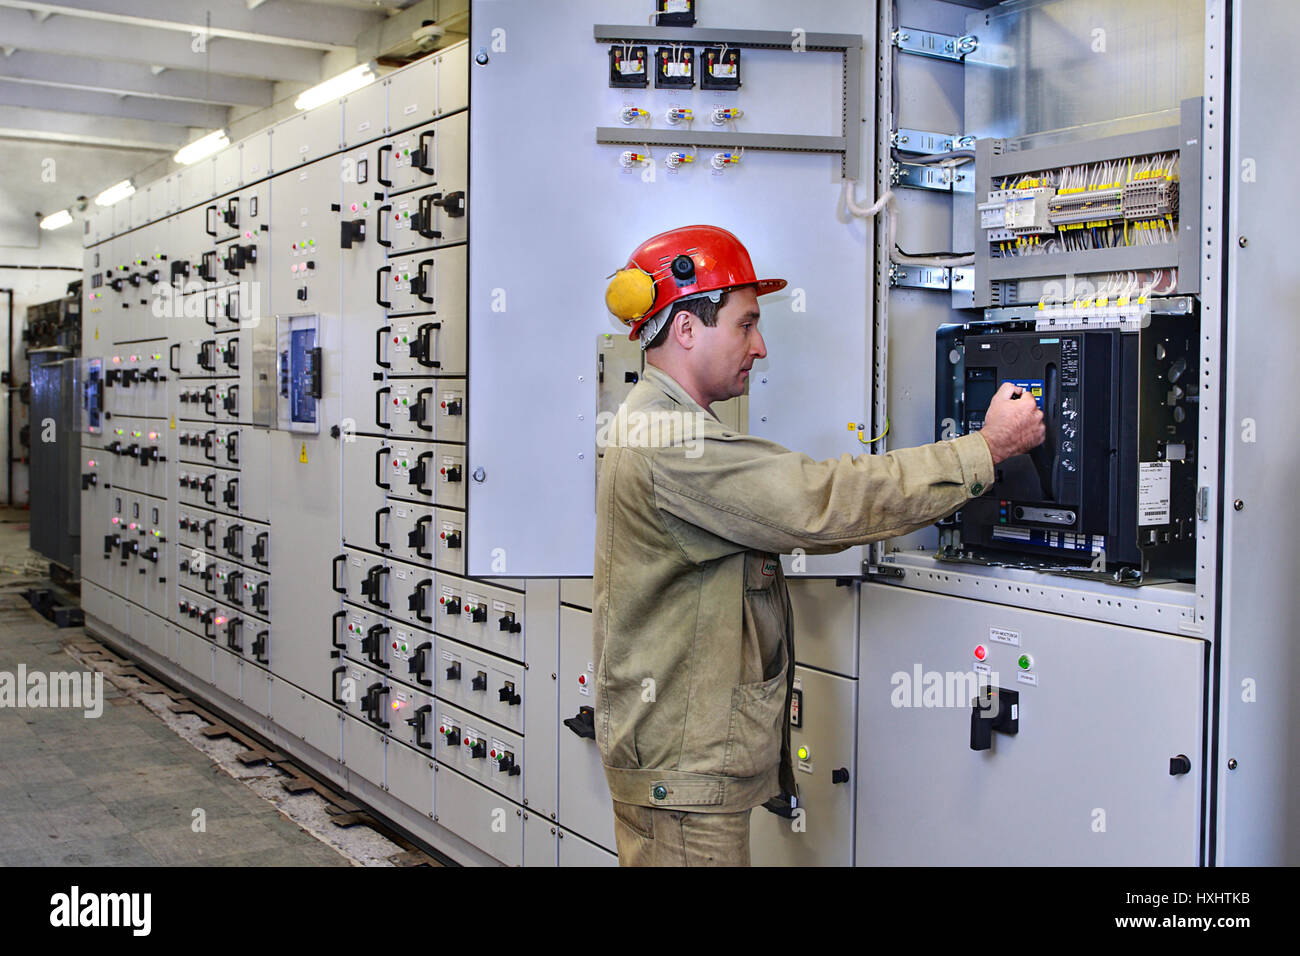 Electrical Distribution Board Circuit Breakers Stock Photos Wiring Diagram High Voltage Switch Gear Veliky Novgorod Russia June 26 2007 Service For Switchgear